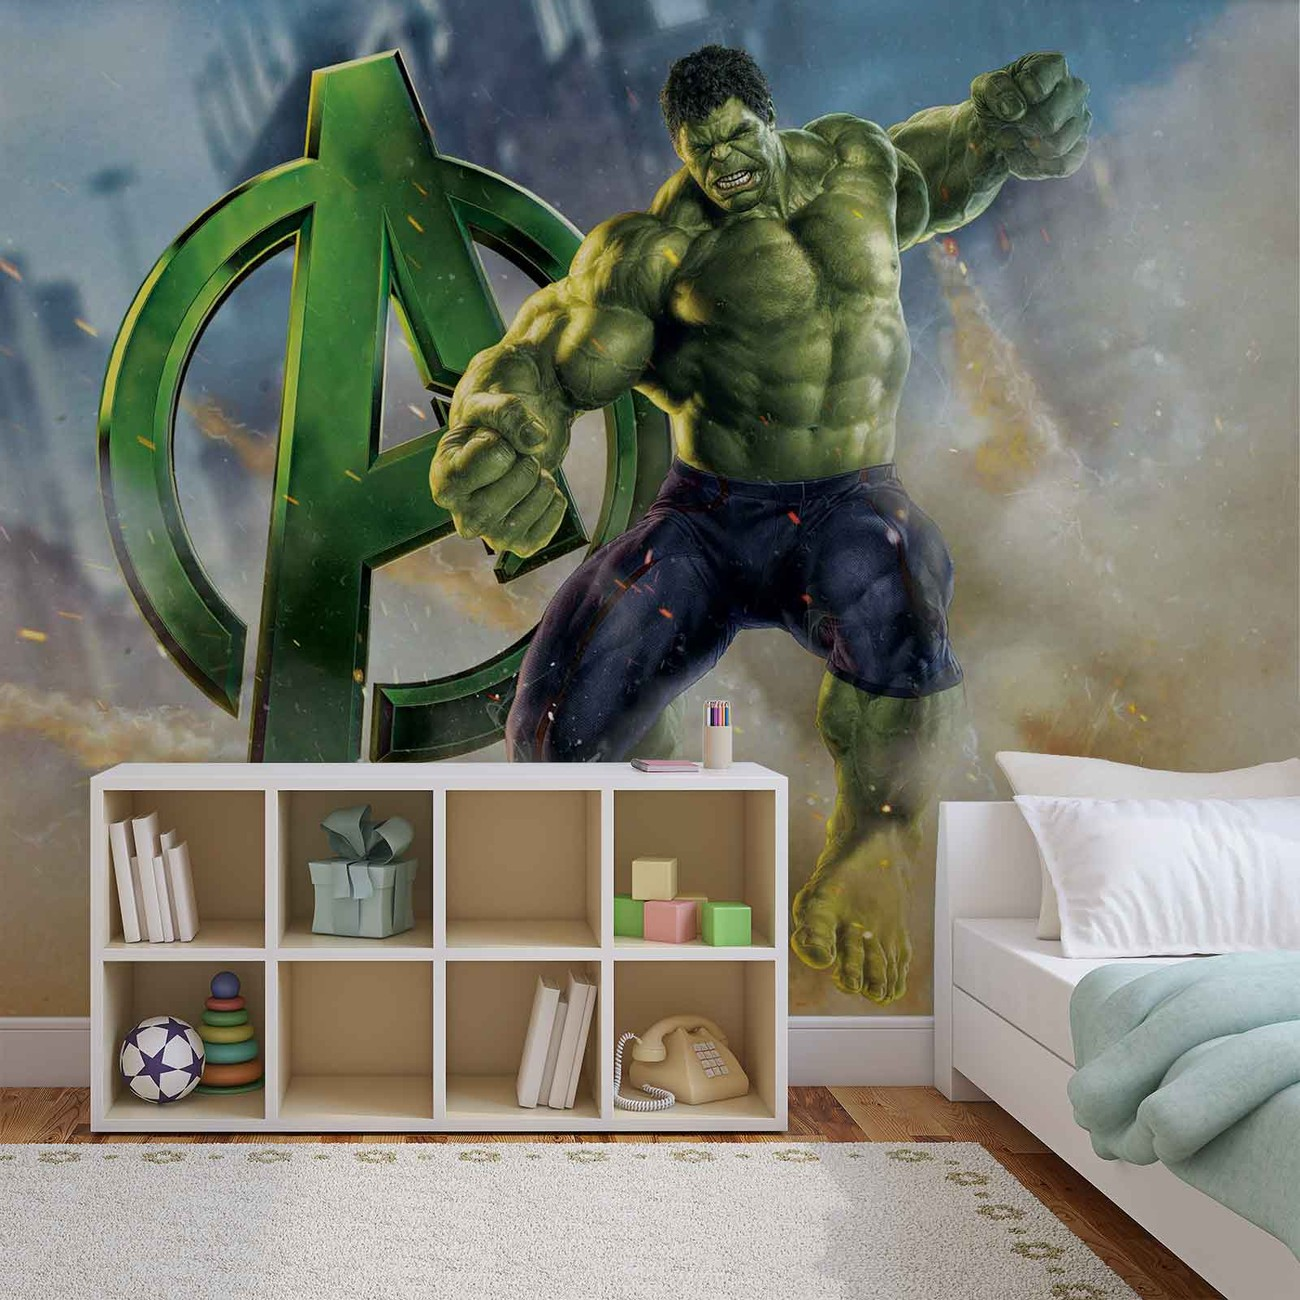 Marvel avengers wall paper mural buy at europosters for Avengers wall mural